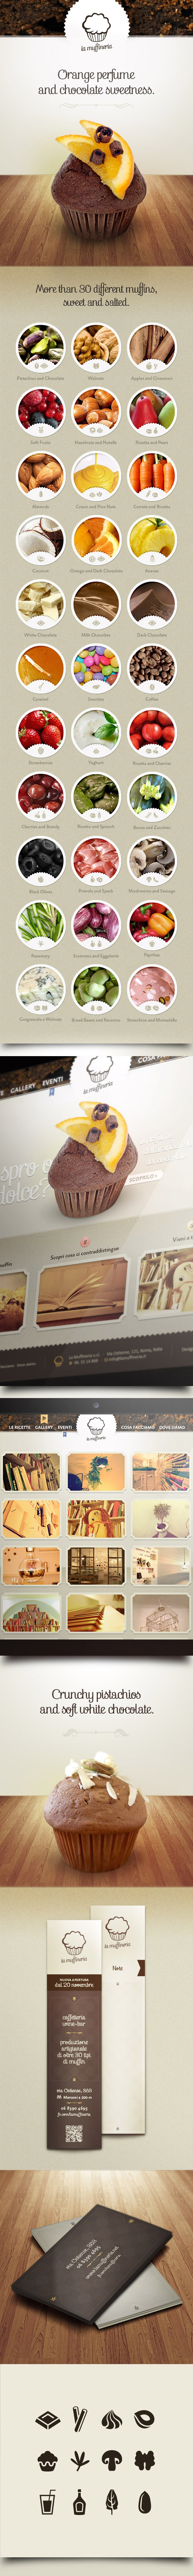 La Muffineria by Alessandro Suraci, via Behance #webdesign #branding #inspiration #muffin